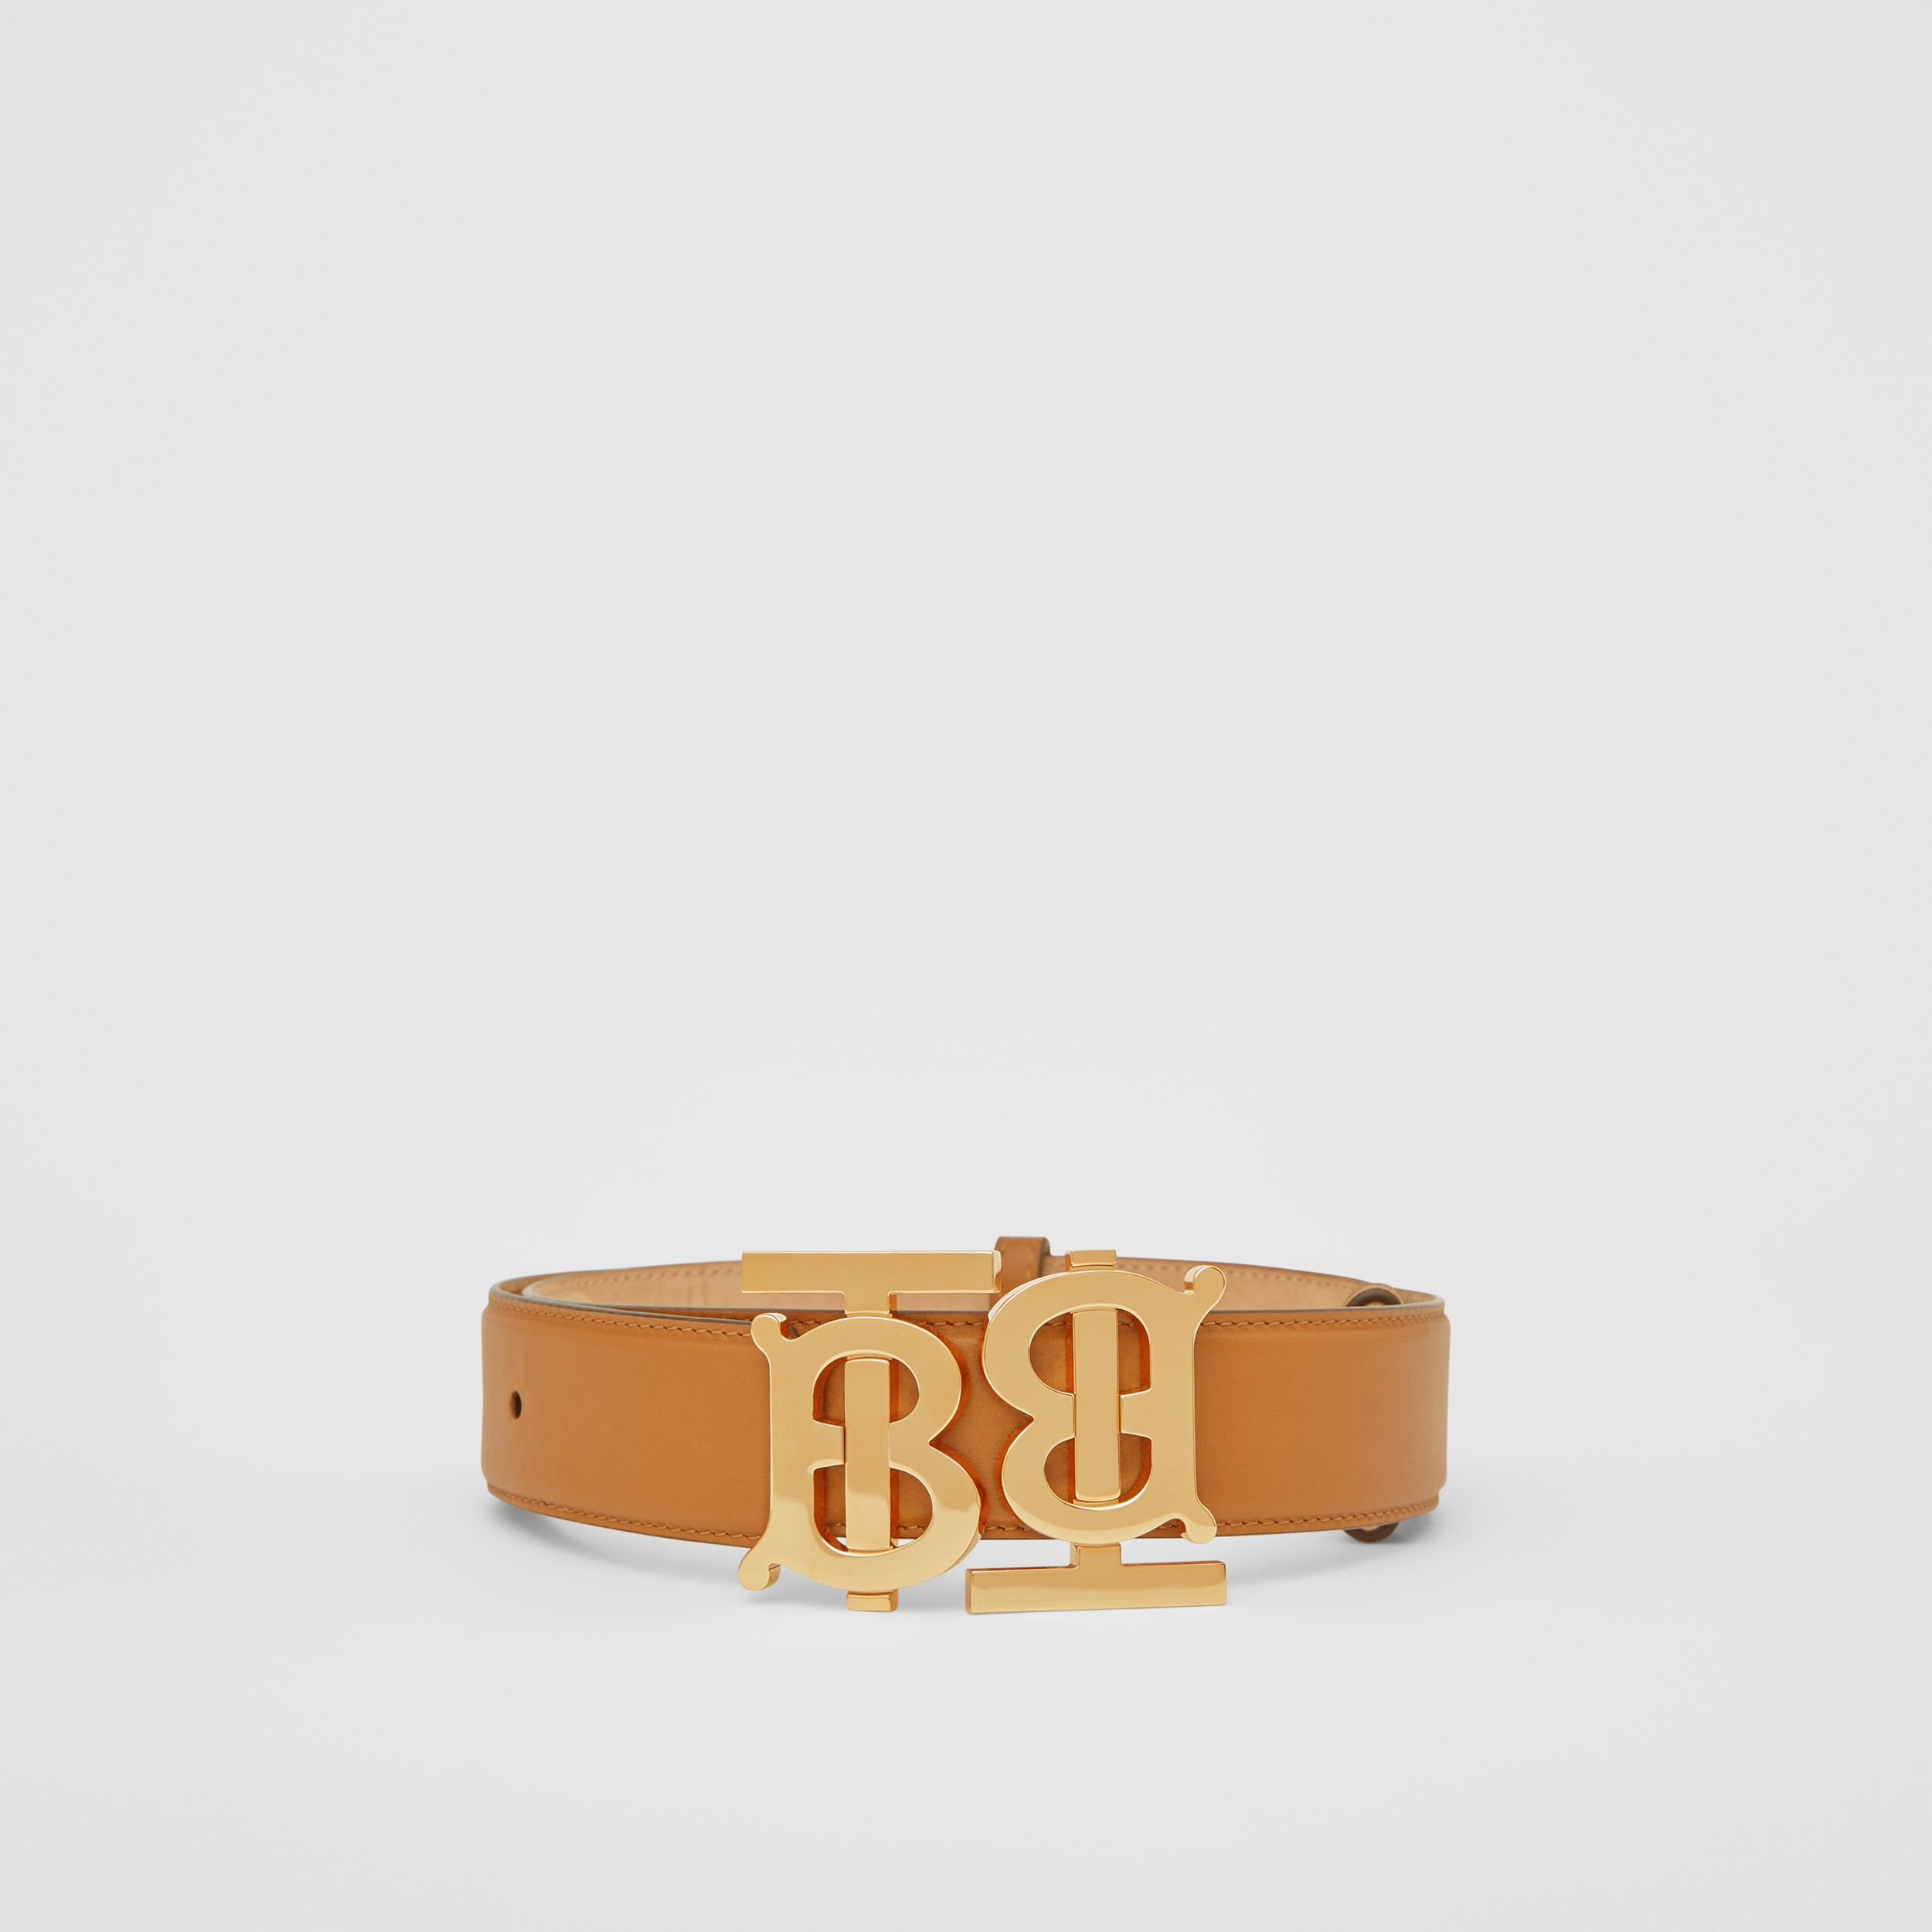 Double Monogram Motif Leather Belt in Warm Tan - Women | Burberry - 4